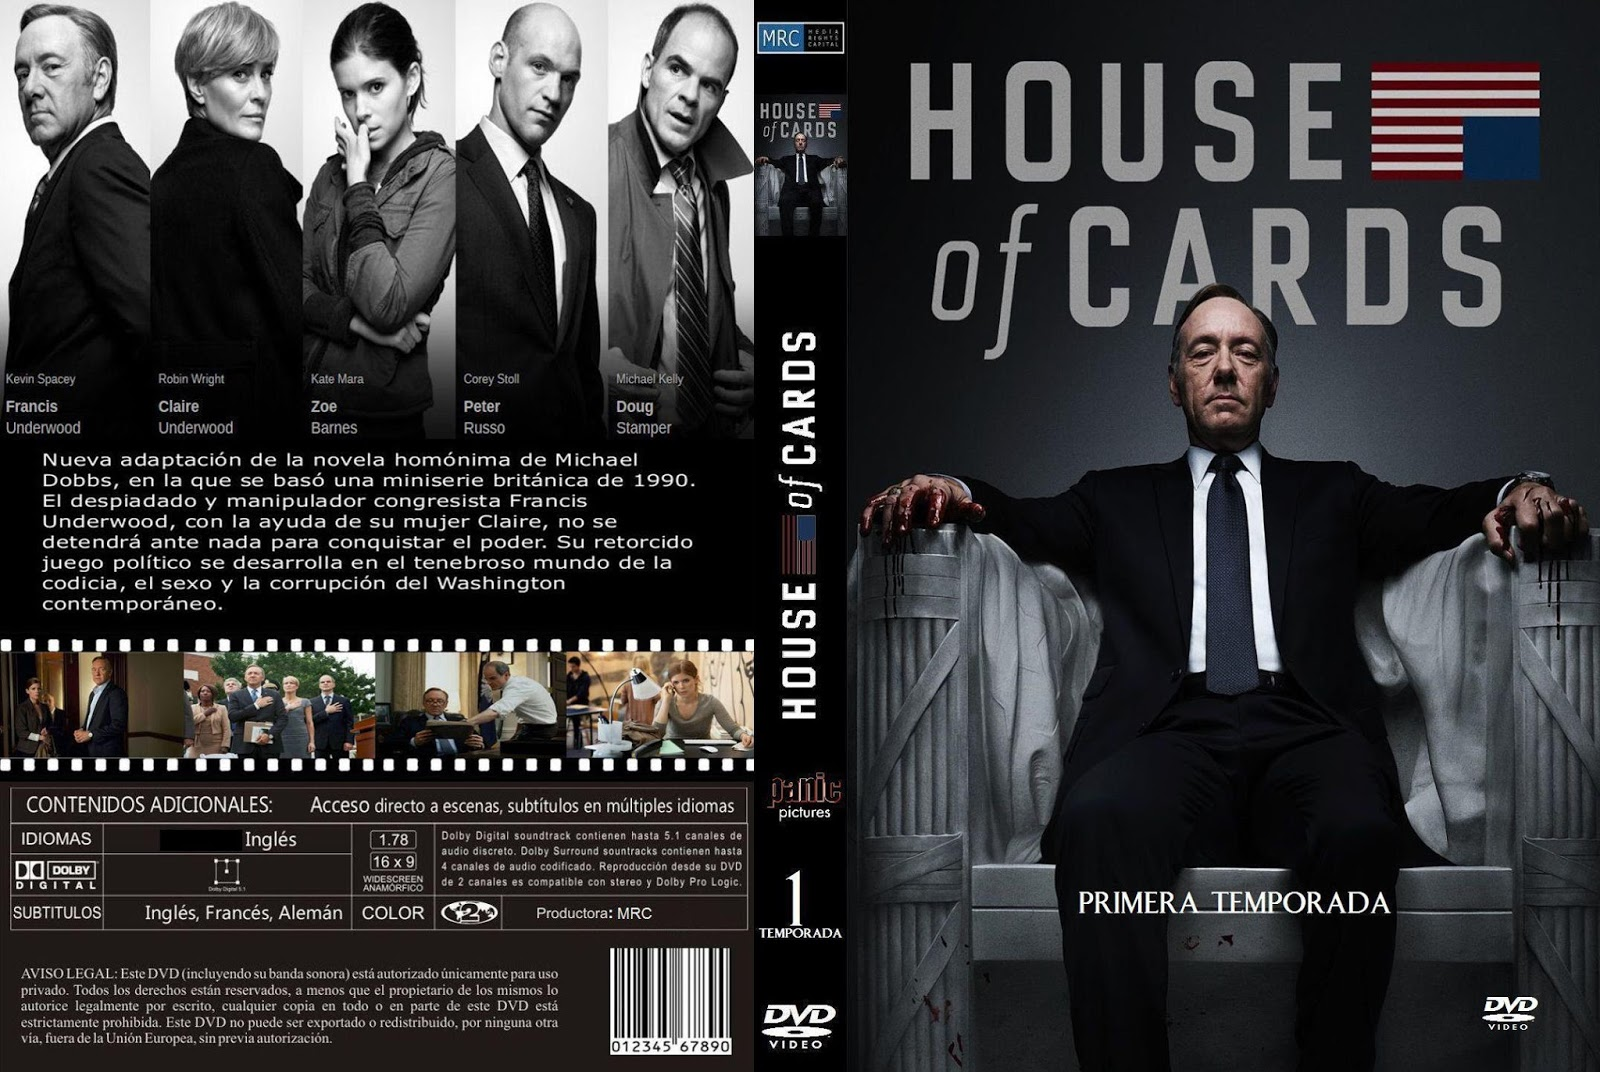 house of cards season 1 online streaming free / okay google how